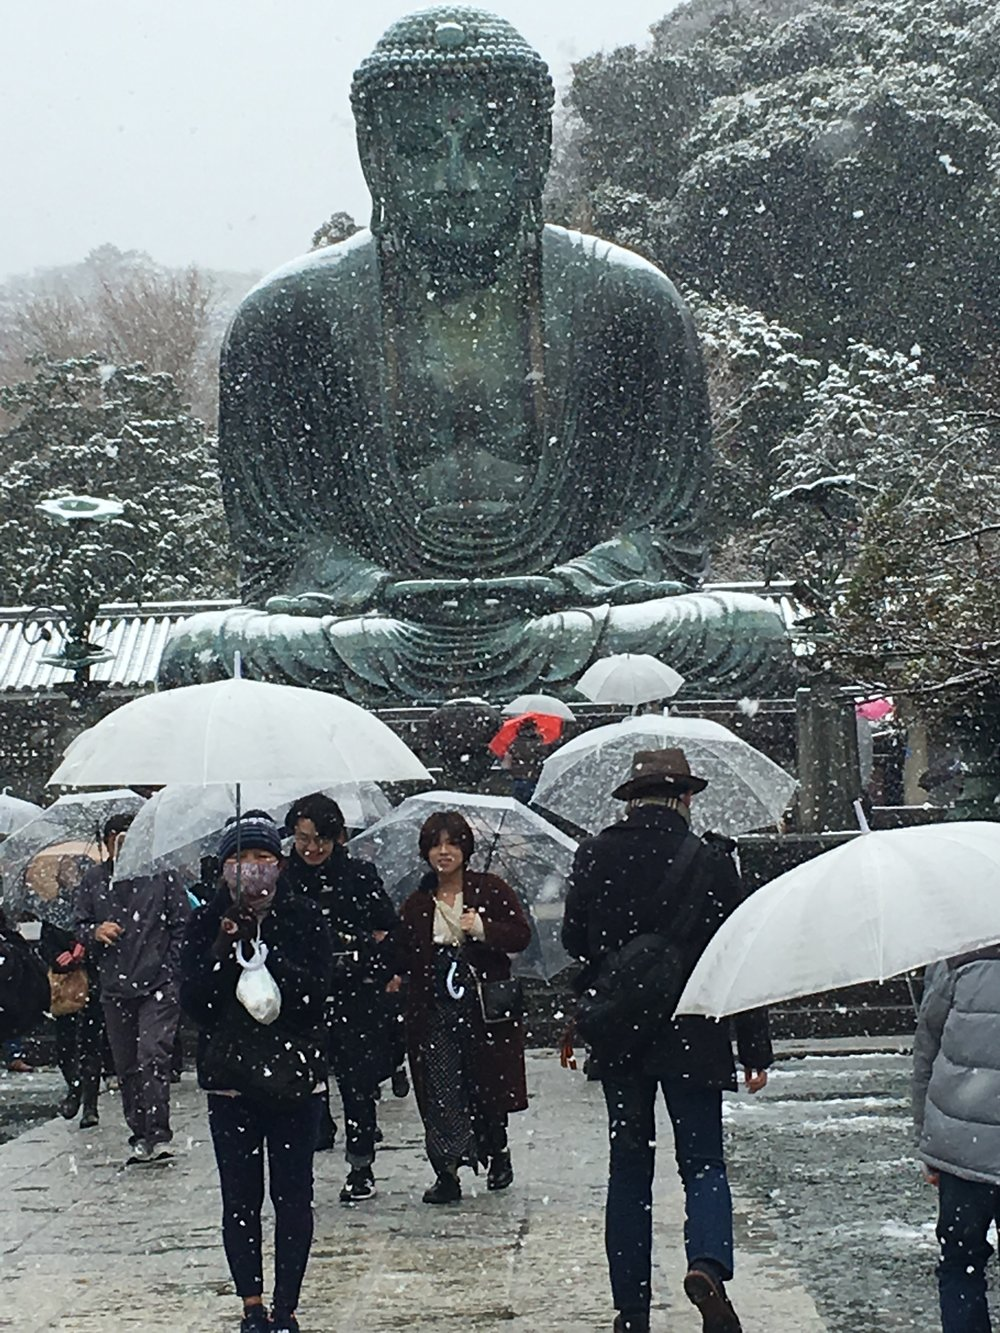 the Great Buddha of Kamakura - March 2018 - first day of Spring